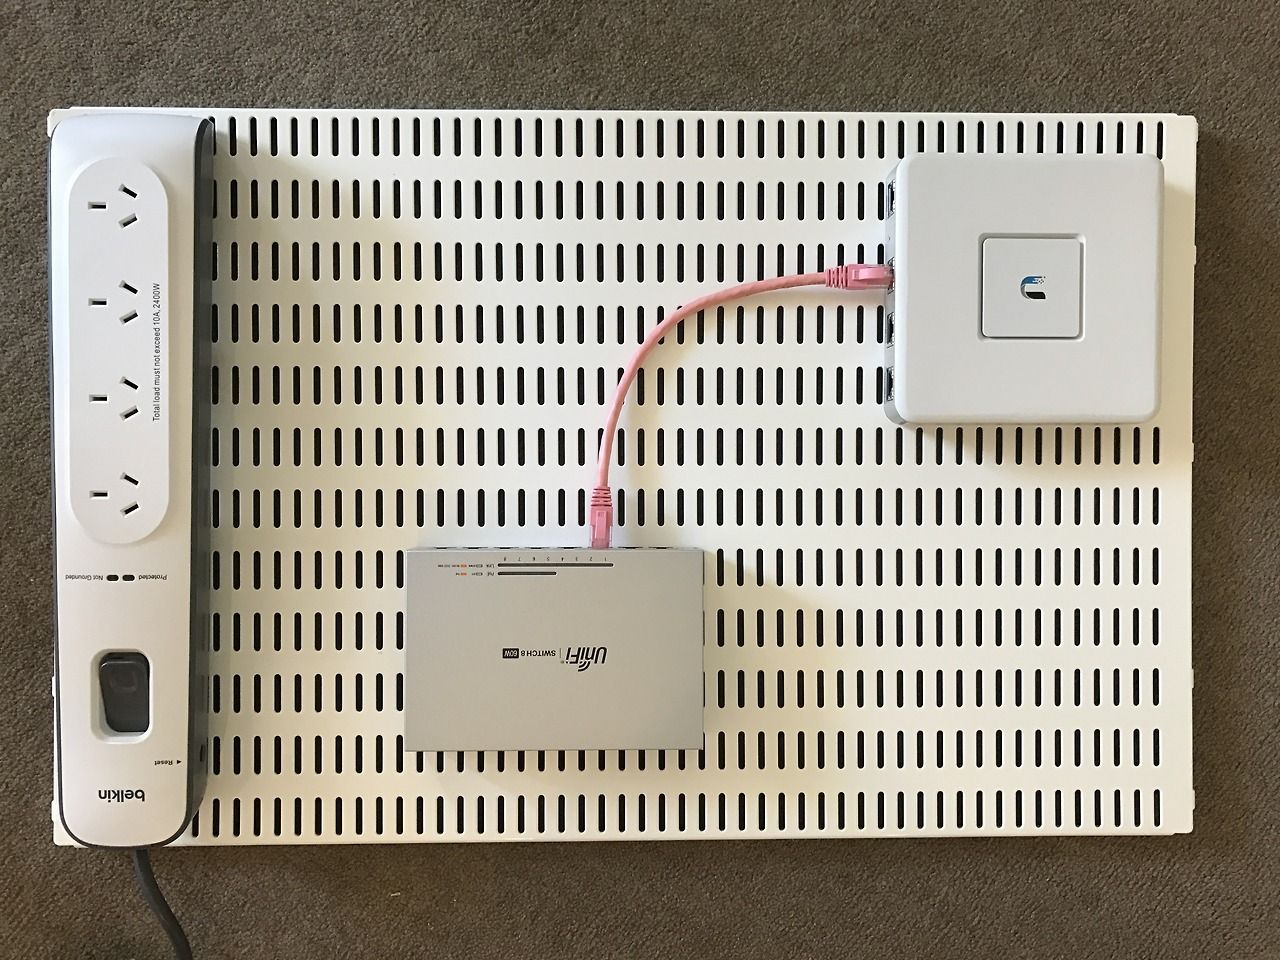 Network Wall Mount Test In Preparation For Moving To A New Apartment With Nbn Fttp I Ve Been Slowly Purchasing All New De Network Rack Home Network Diy Network